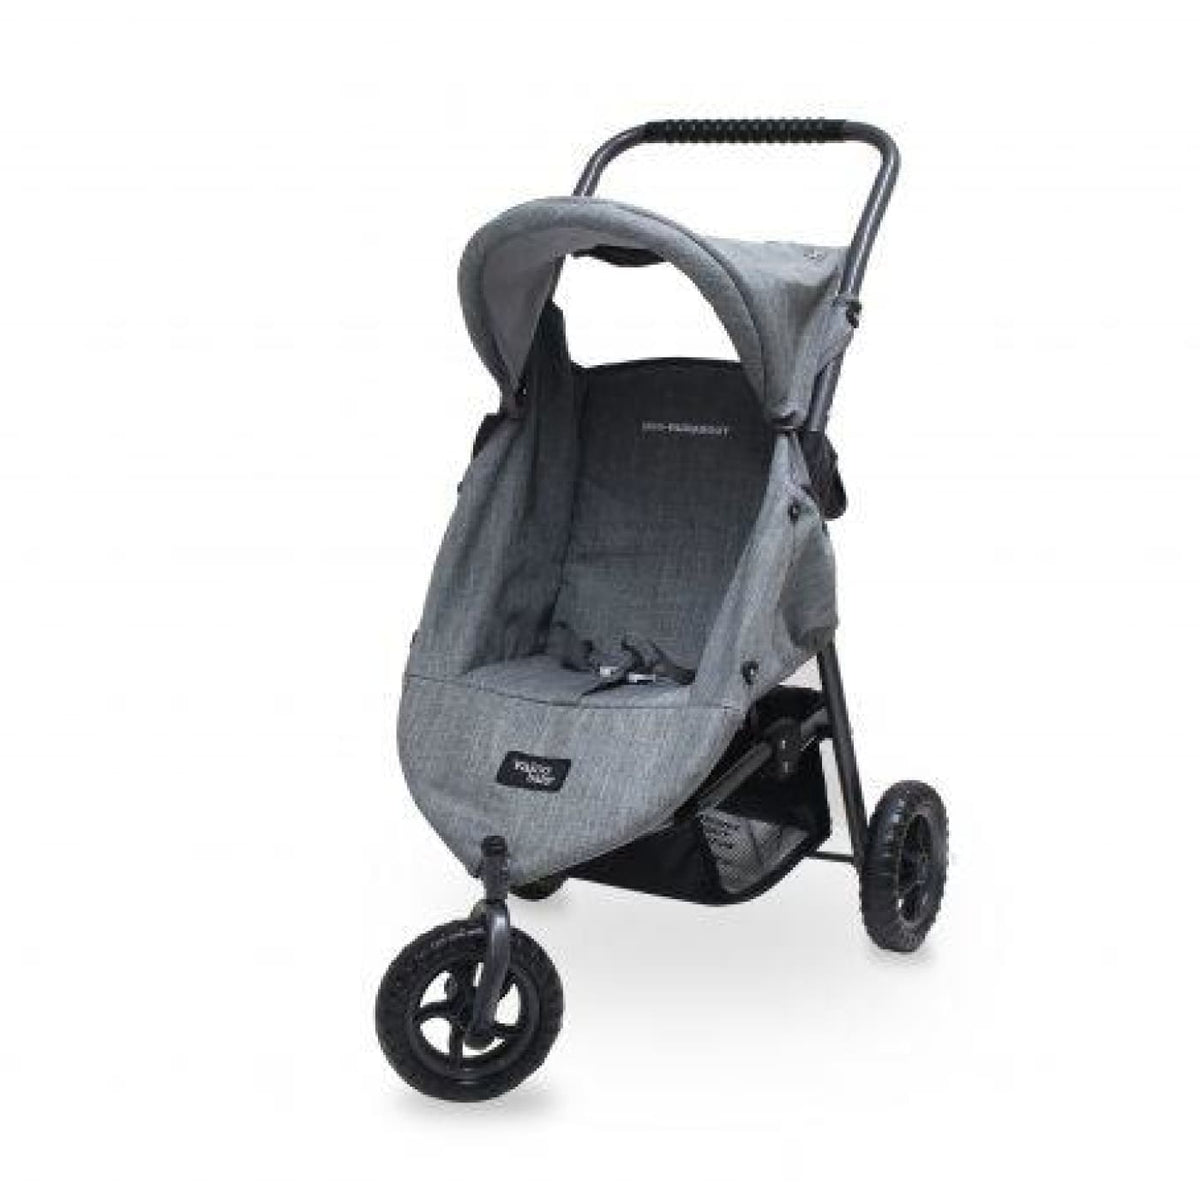 Valco Baby Just Like Mum Mini Runabout - Grey Marle - TOYS & PLAY - DOLLS/DOLL PRAMS